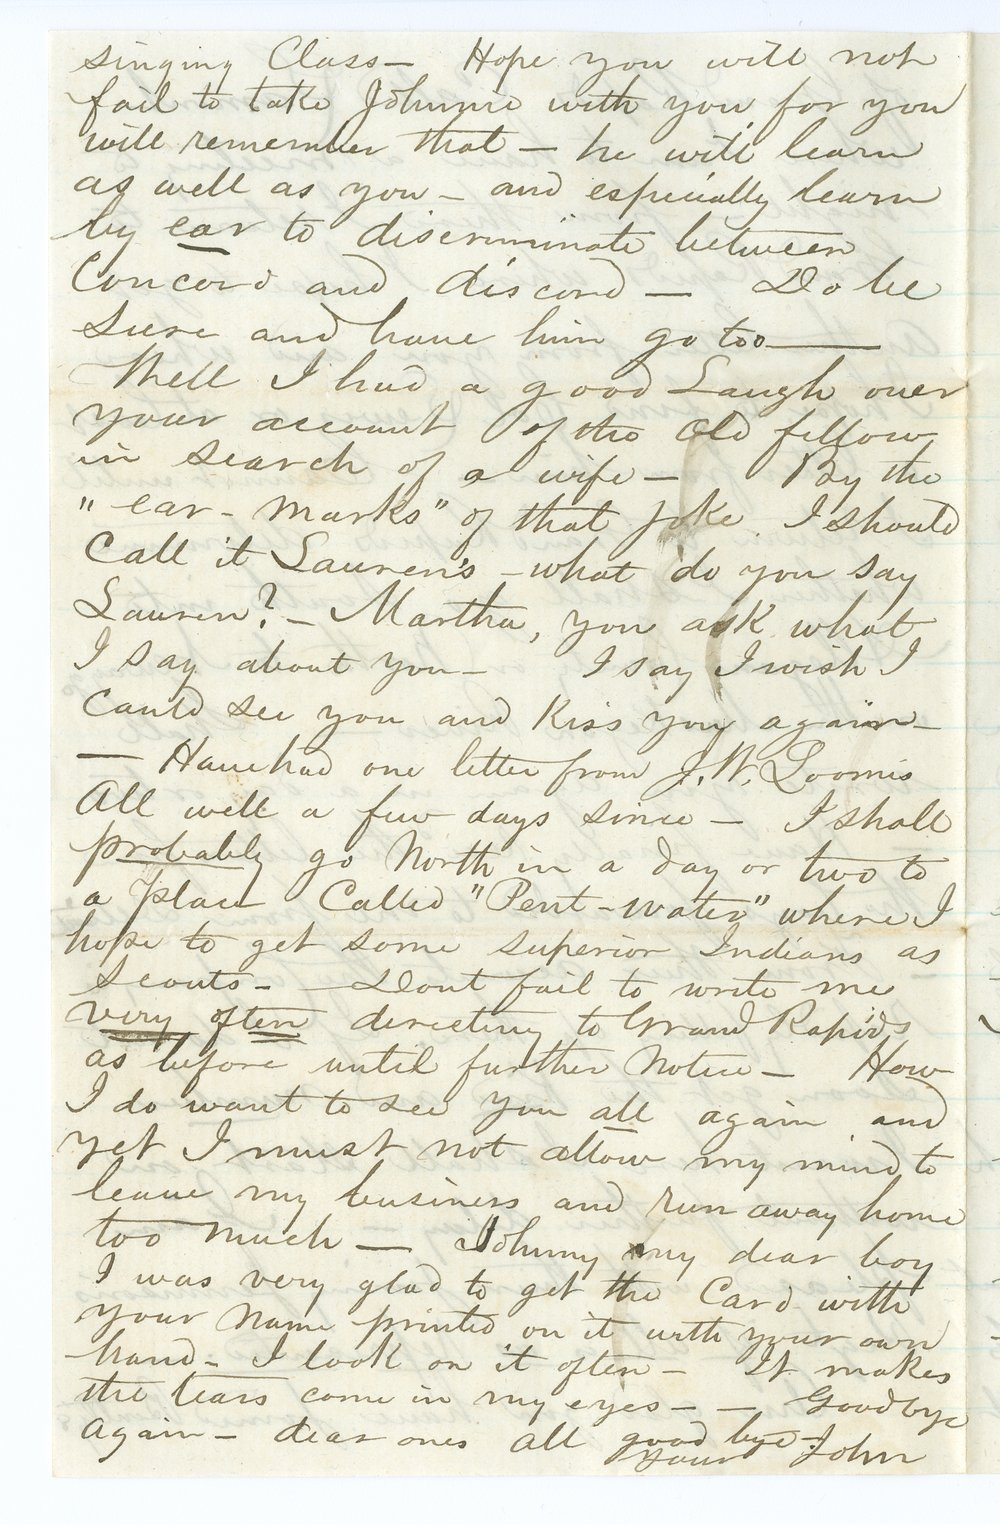 John Brown, Jr. correspondence - 8